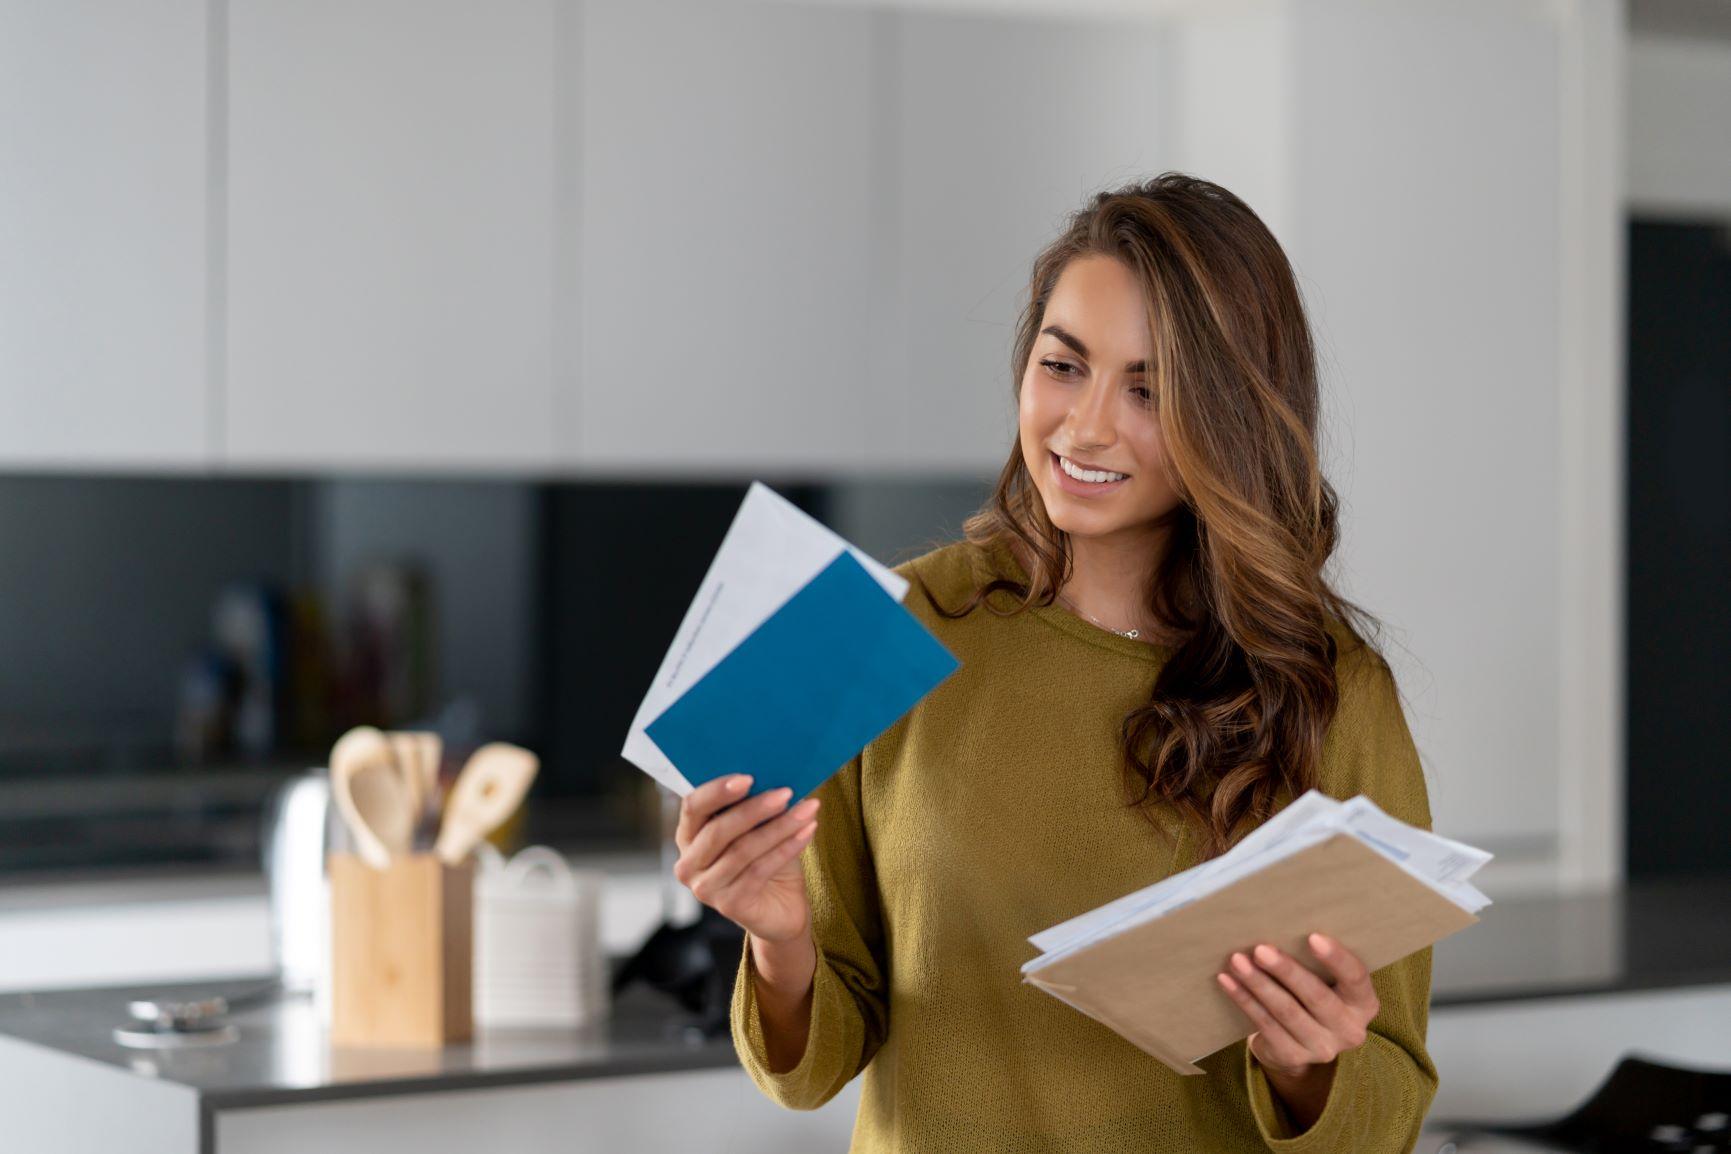 Woman opening mail